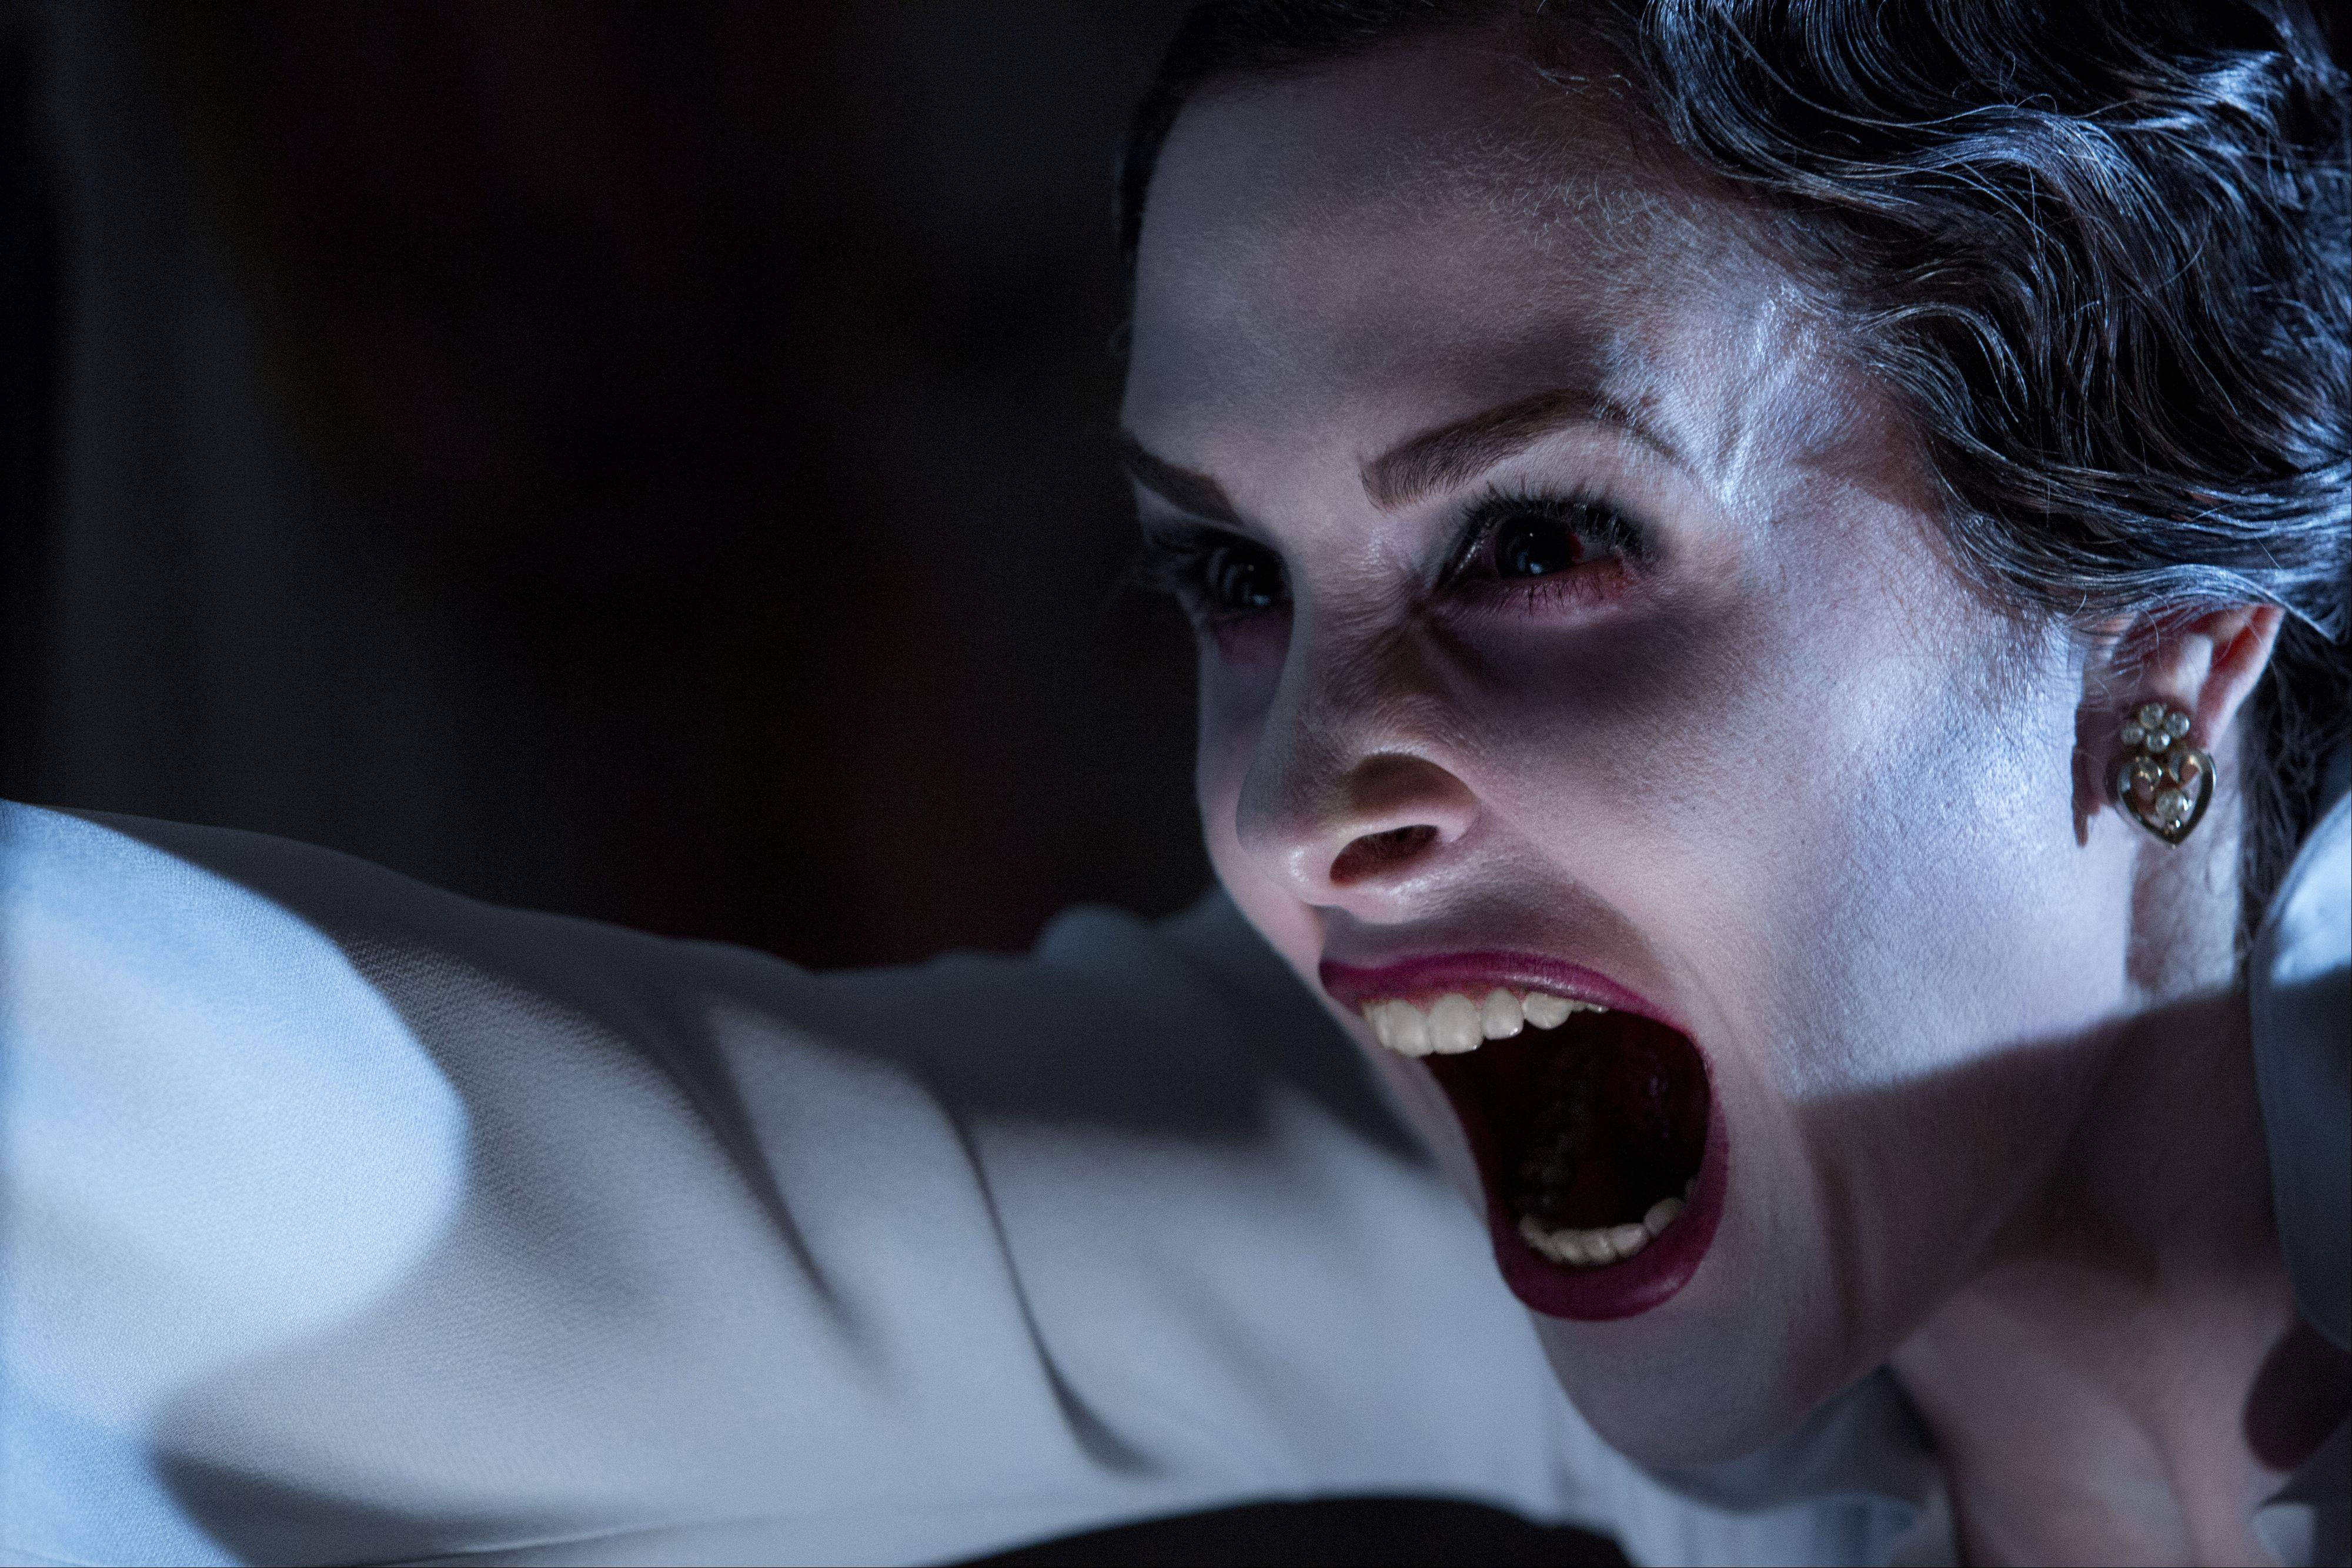 The haunted-house horror sequel �Insidious Chapter 2.� debuted in first place with $41 million, more than tripling the opening take of the 2010 original.